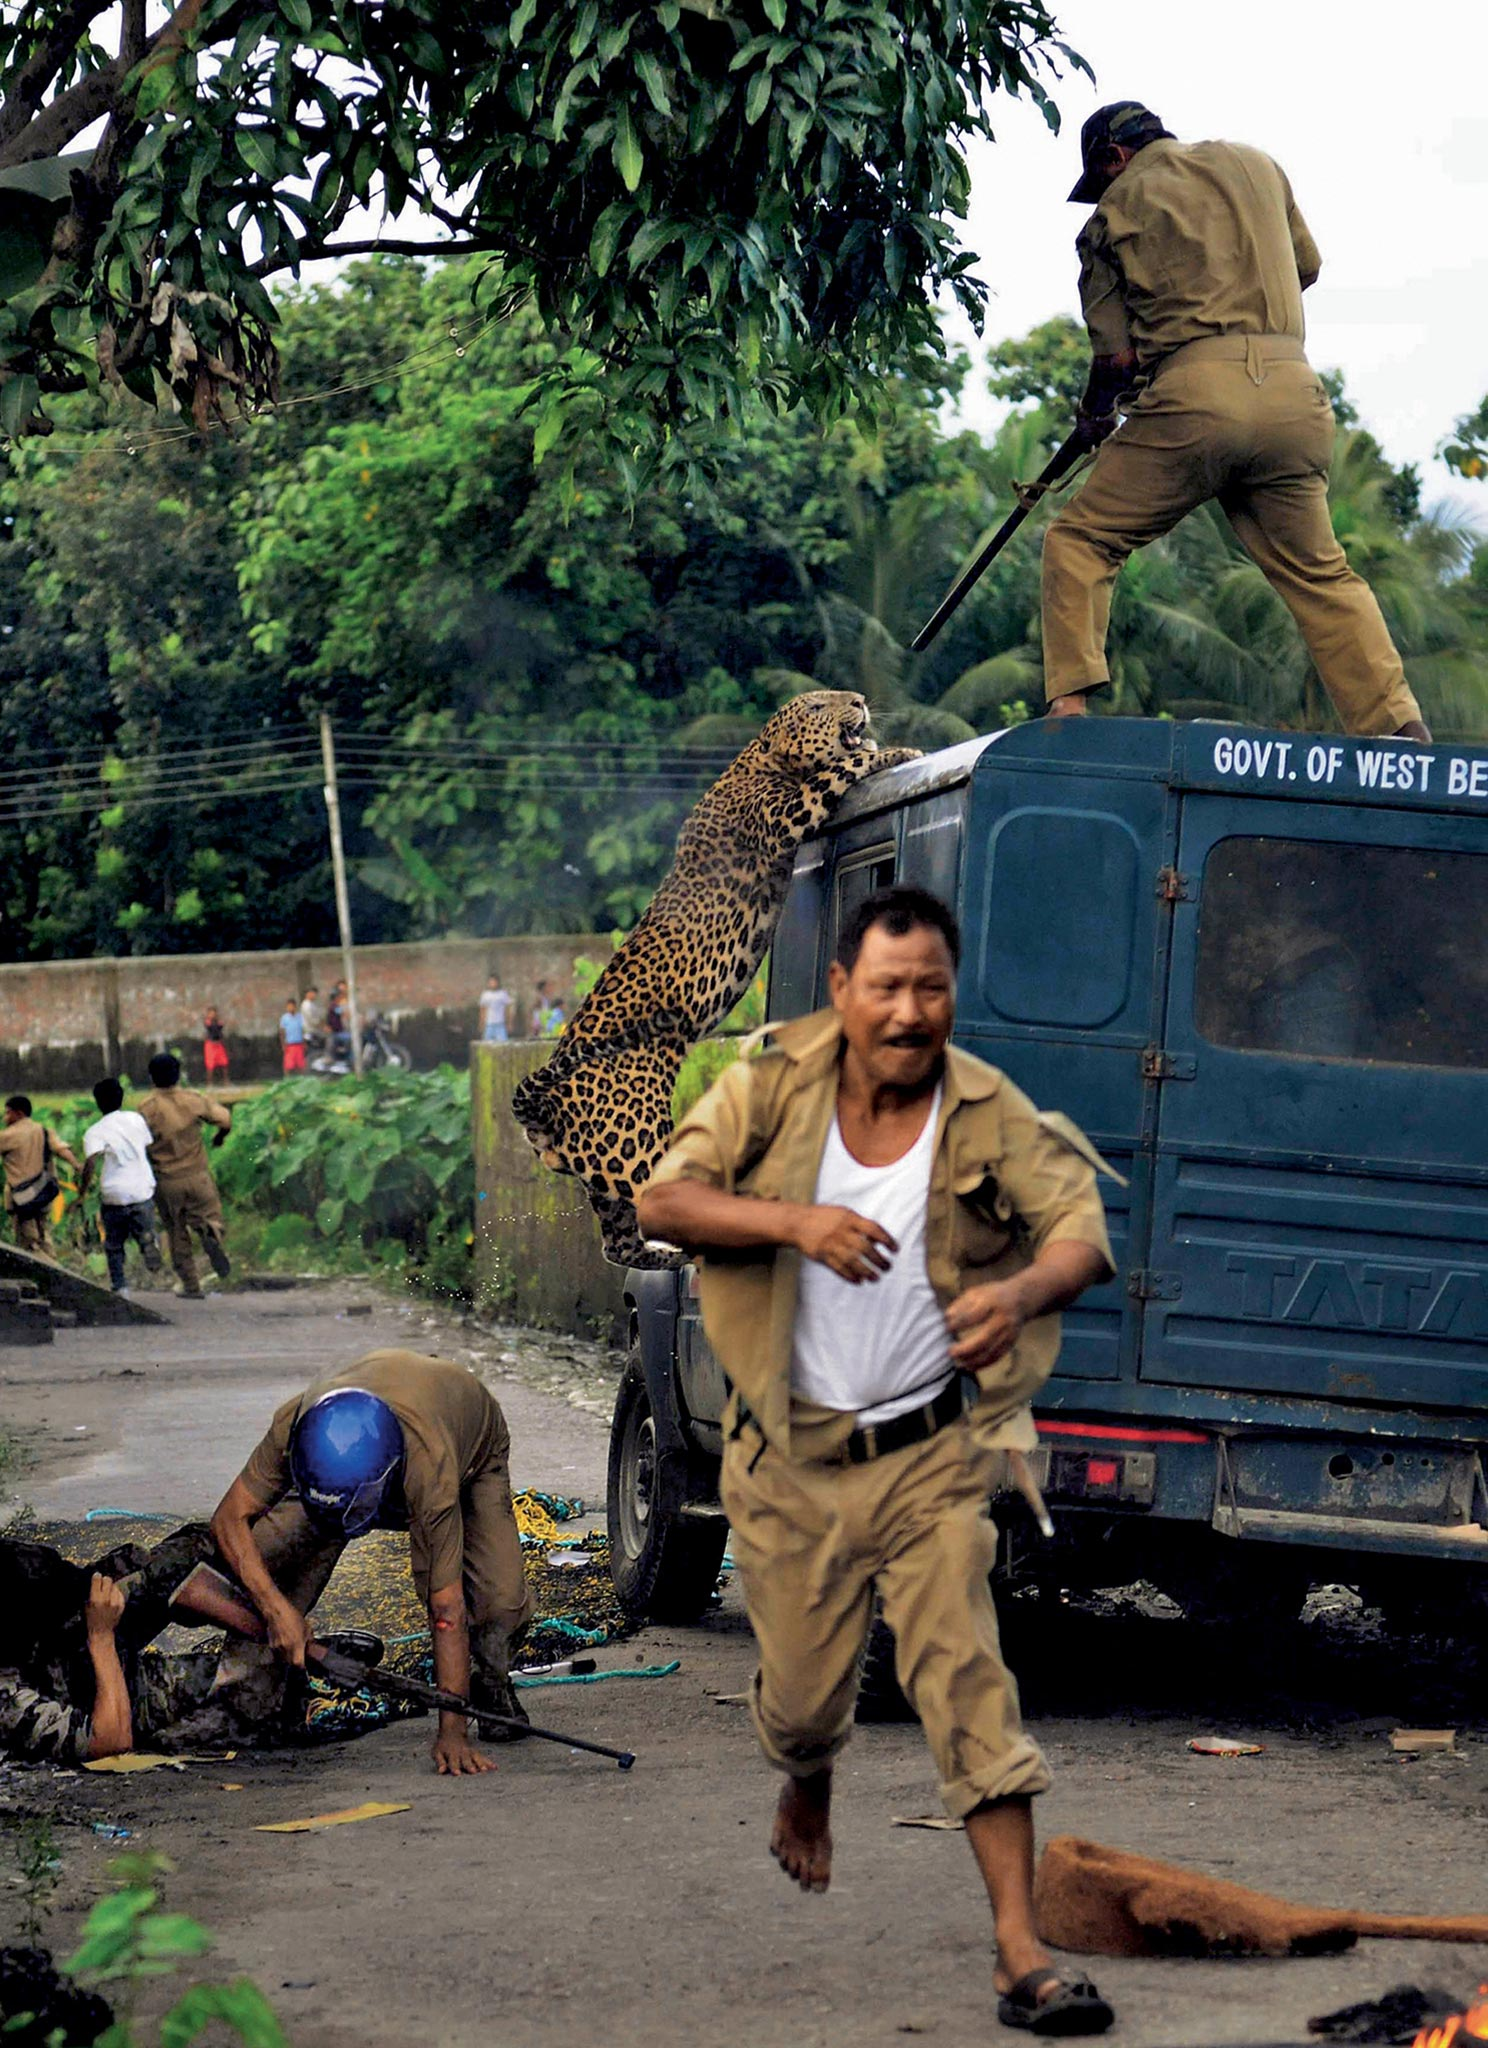 Forest guards grapple with the chaos of a leopard attack in West Bengal, India https://t.co/3QcYwPoSZj